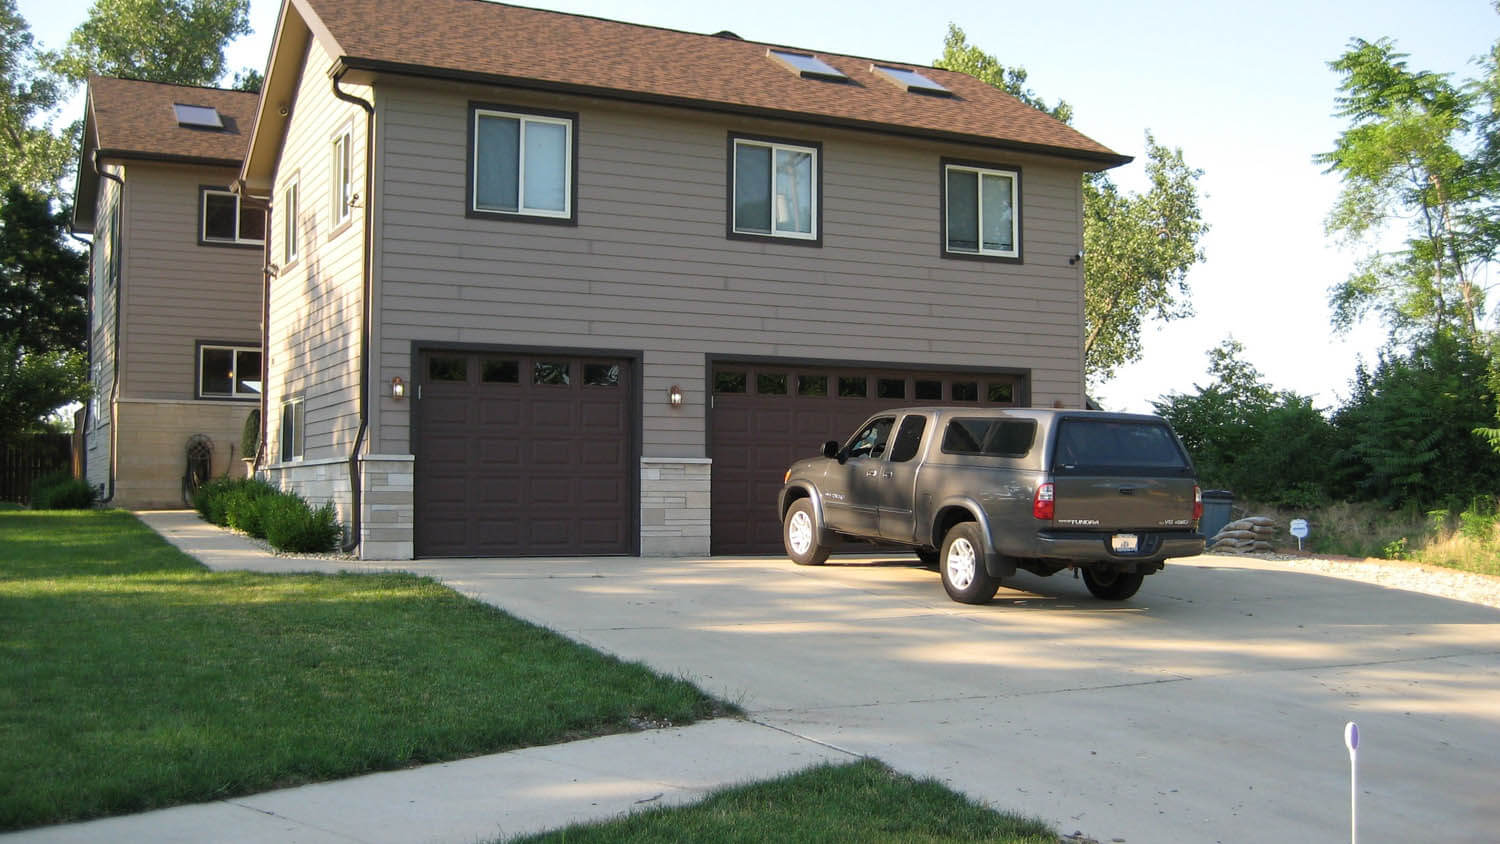 Outdoor view of a large home with a large drive way and a 3 car garage.